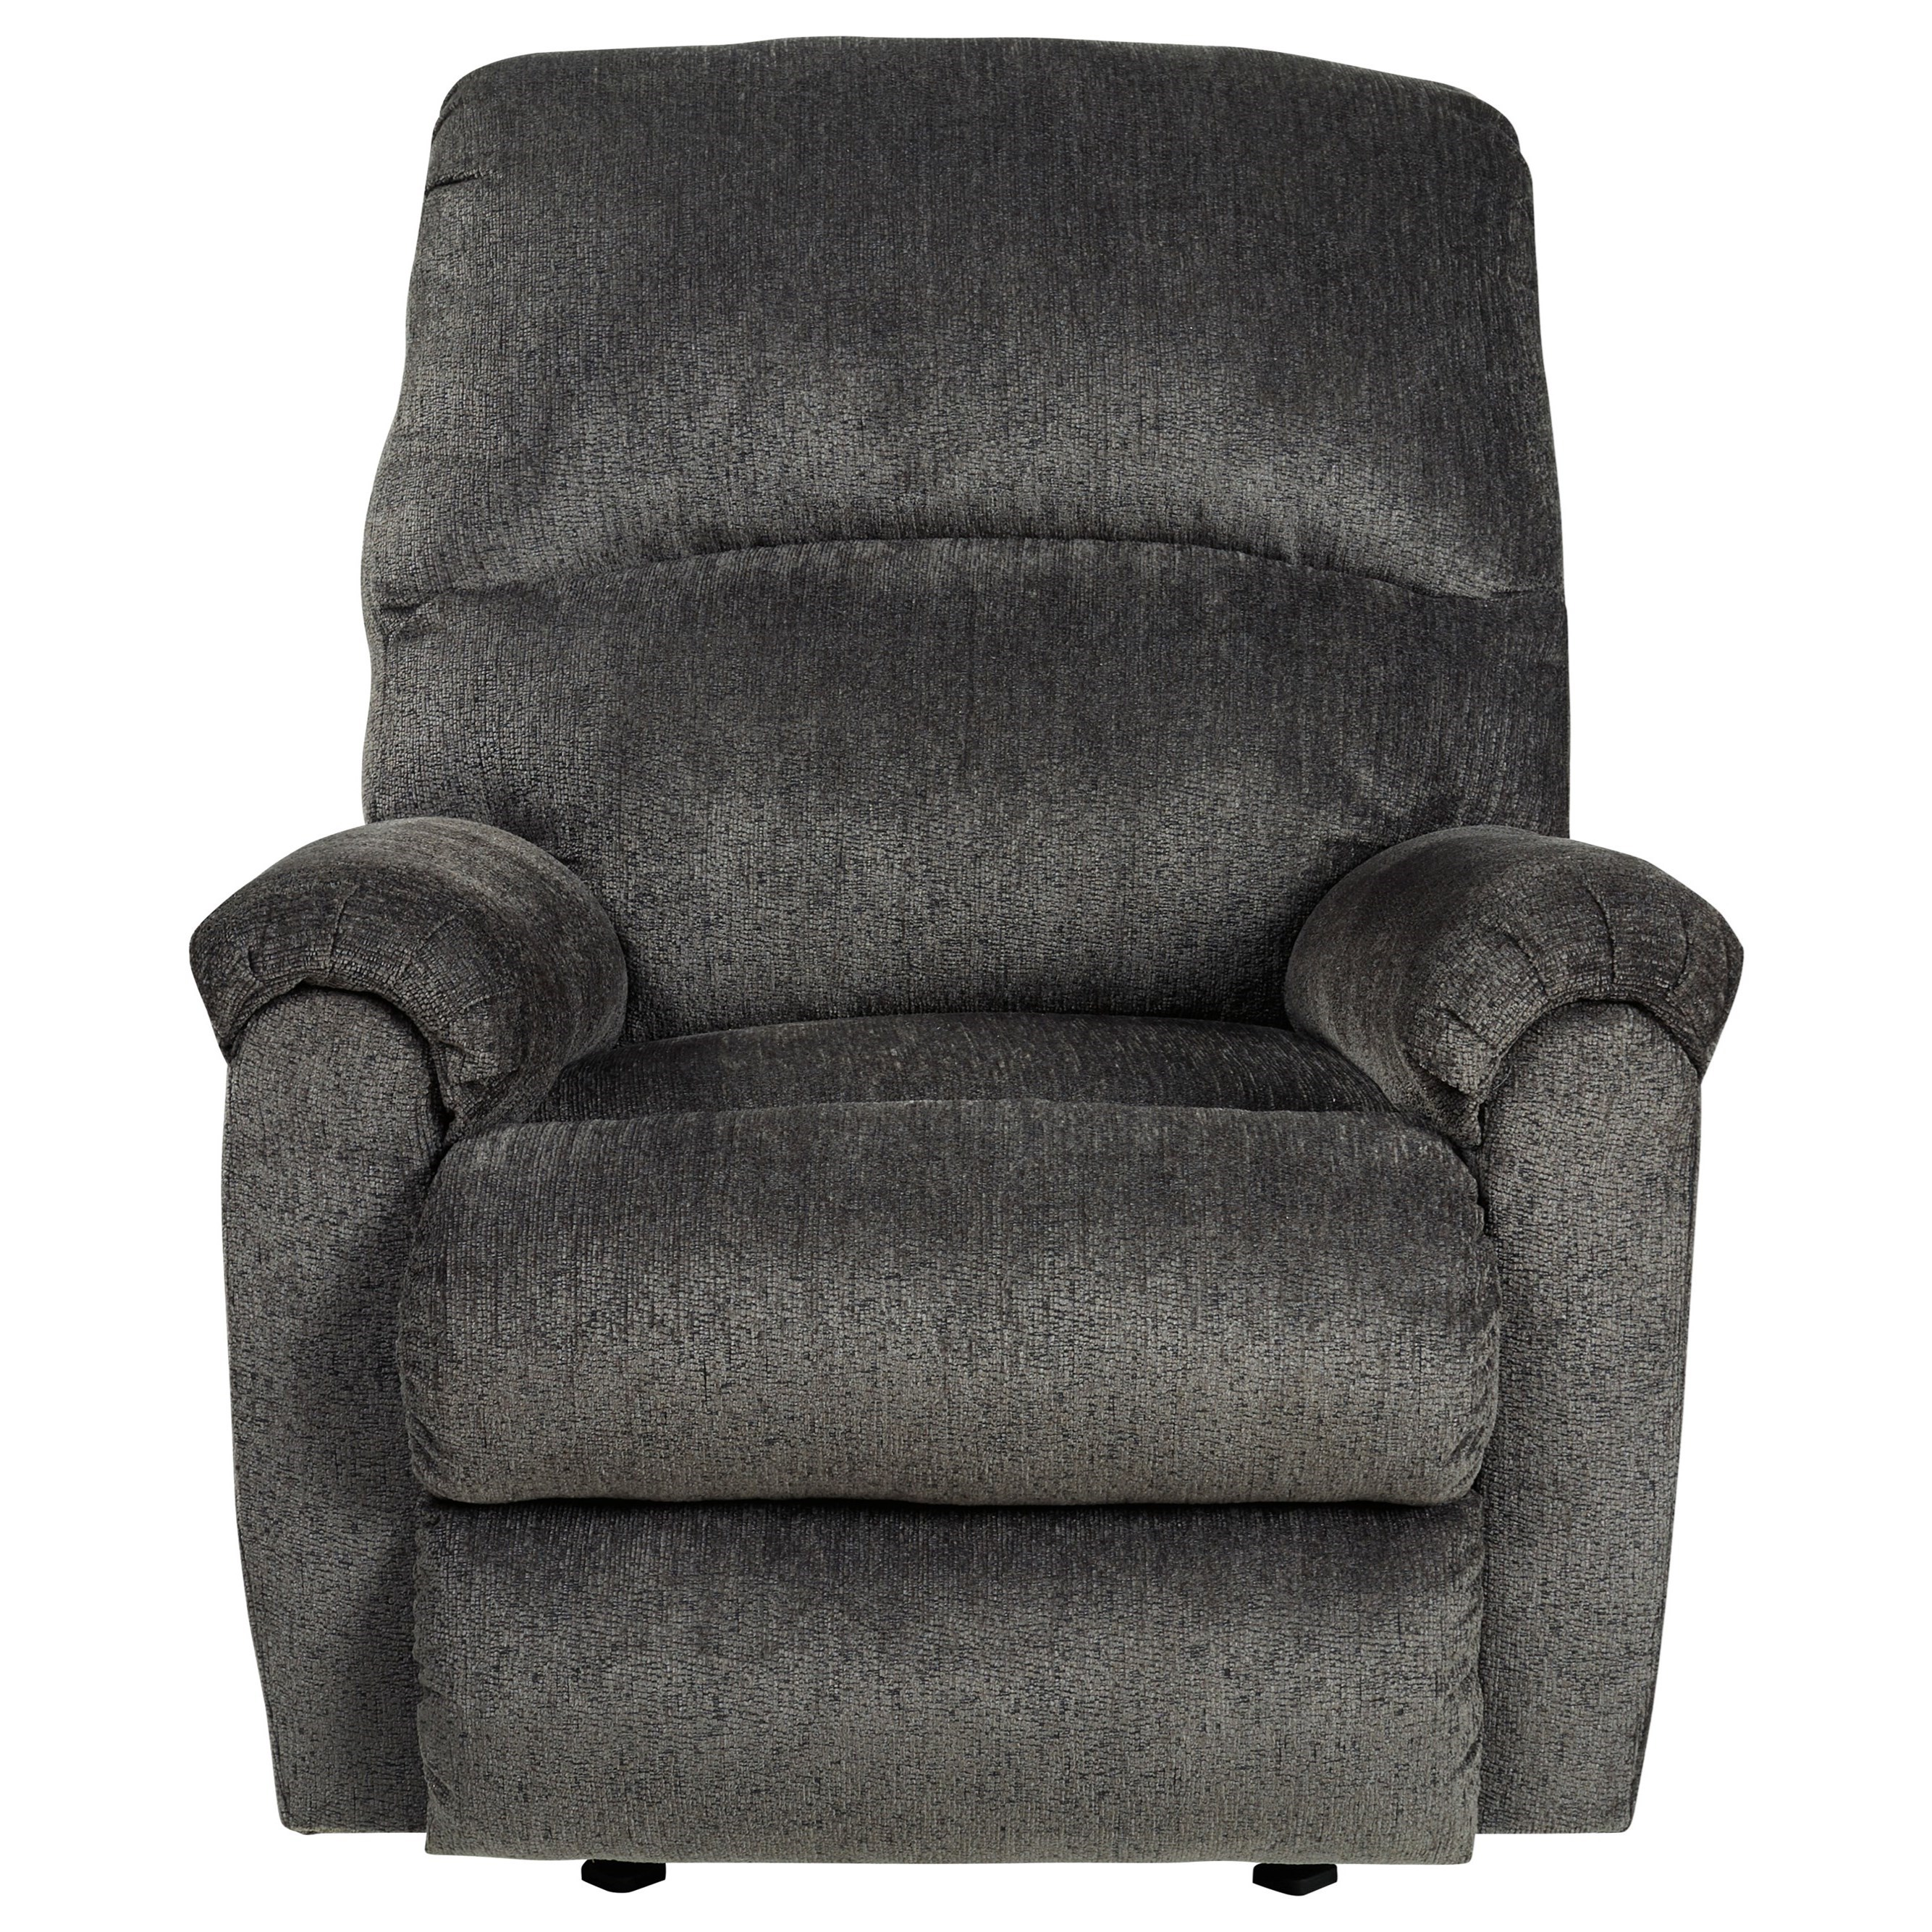 Ballinasloe Rocker Recliner by Signature Design by Ashley at Lapeer Furniture & Mattress Center